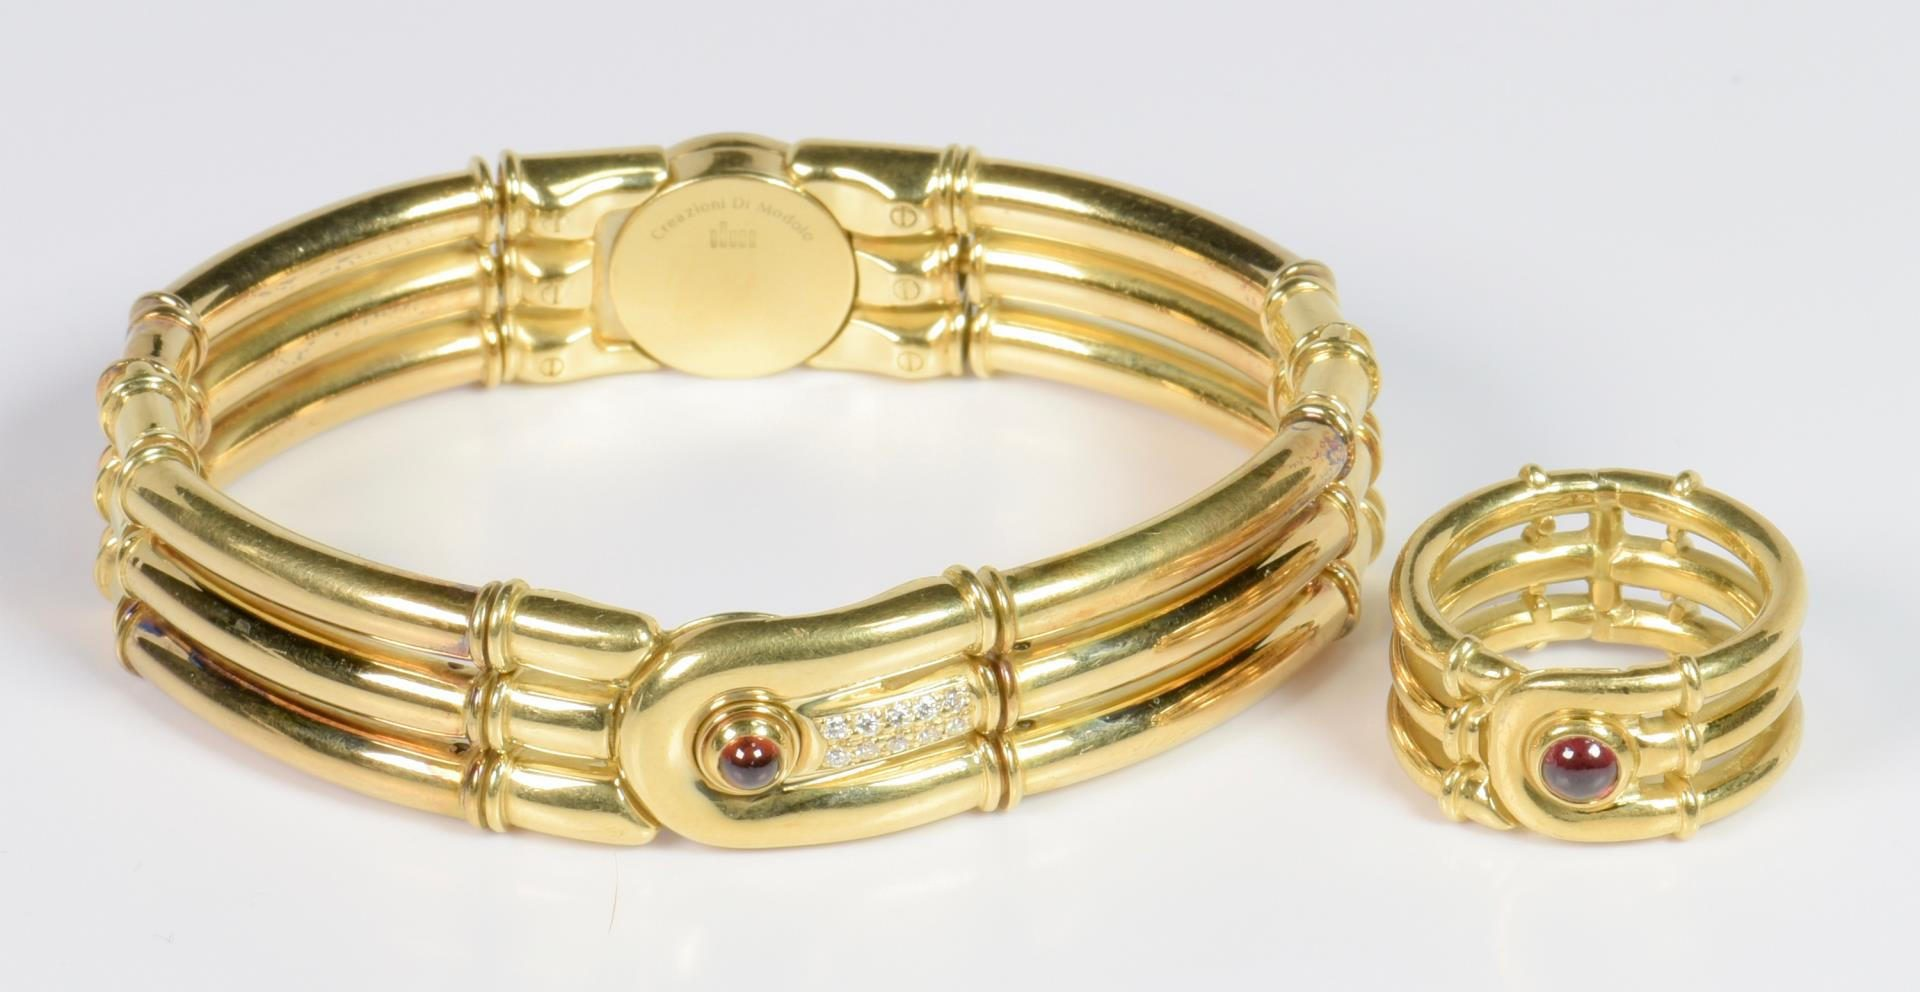 Lot 11: Di Modolo 18K Ring and Bracelet Set